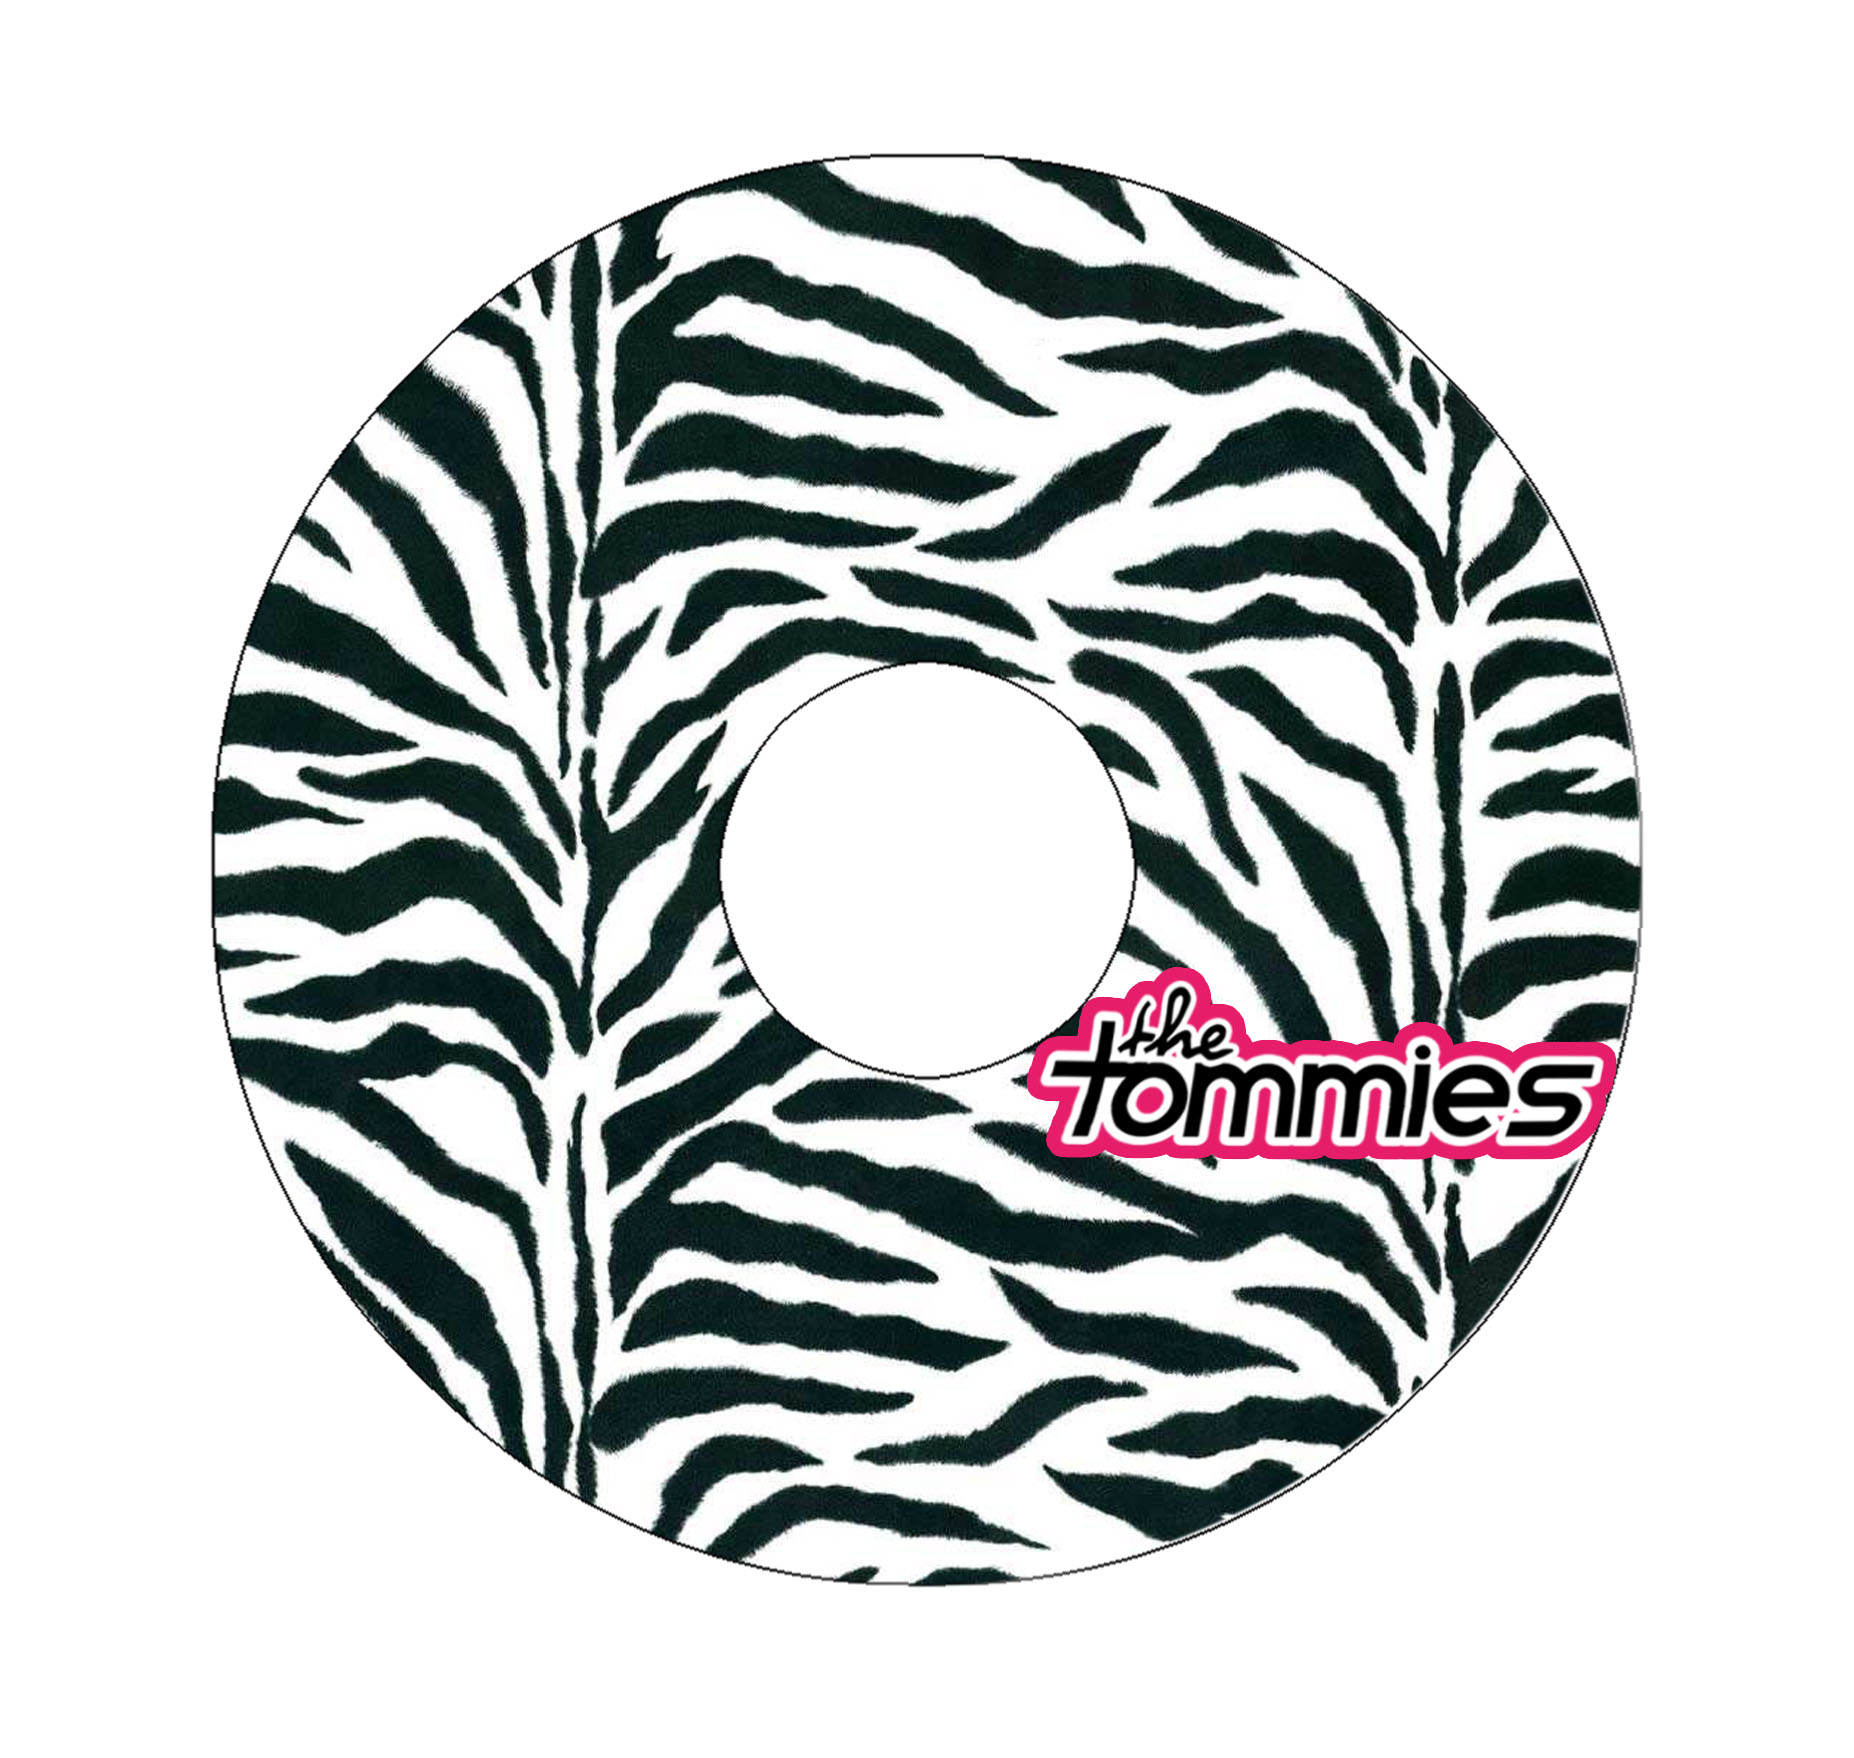 Tommies cd inside.jpg